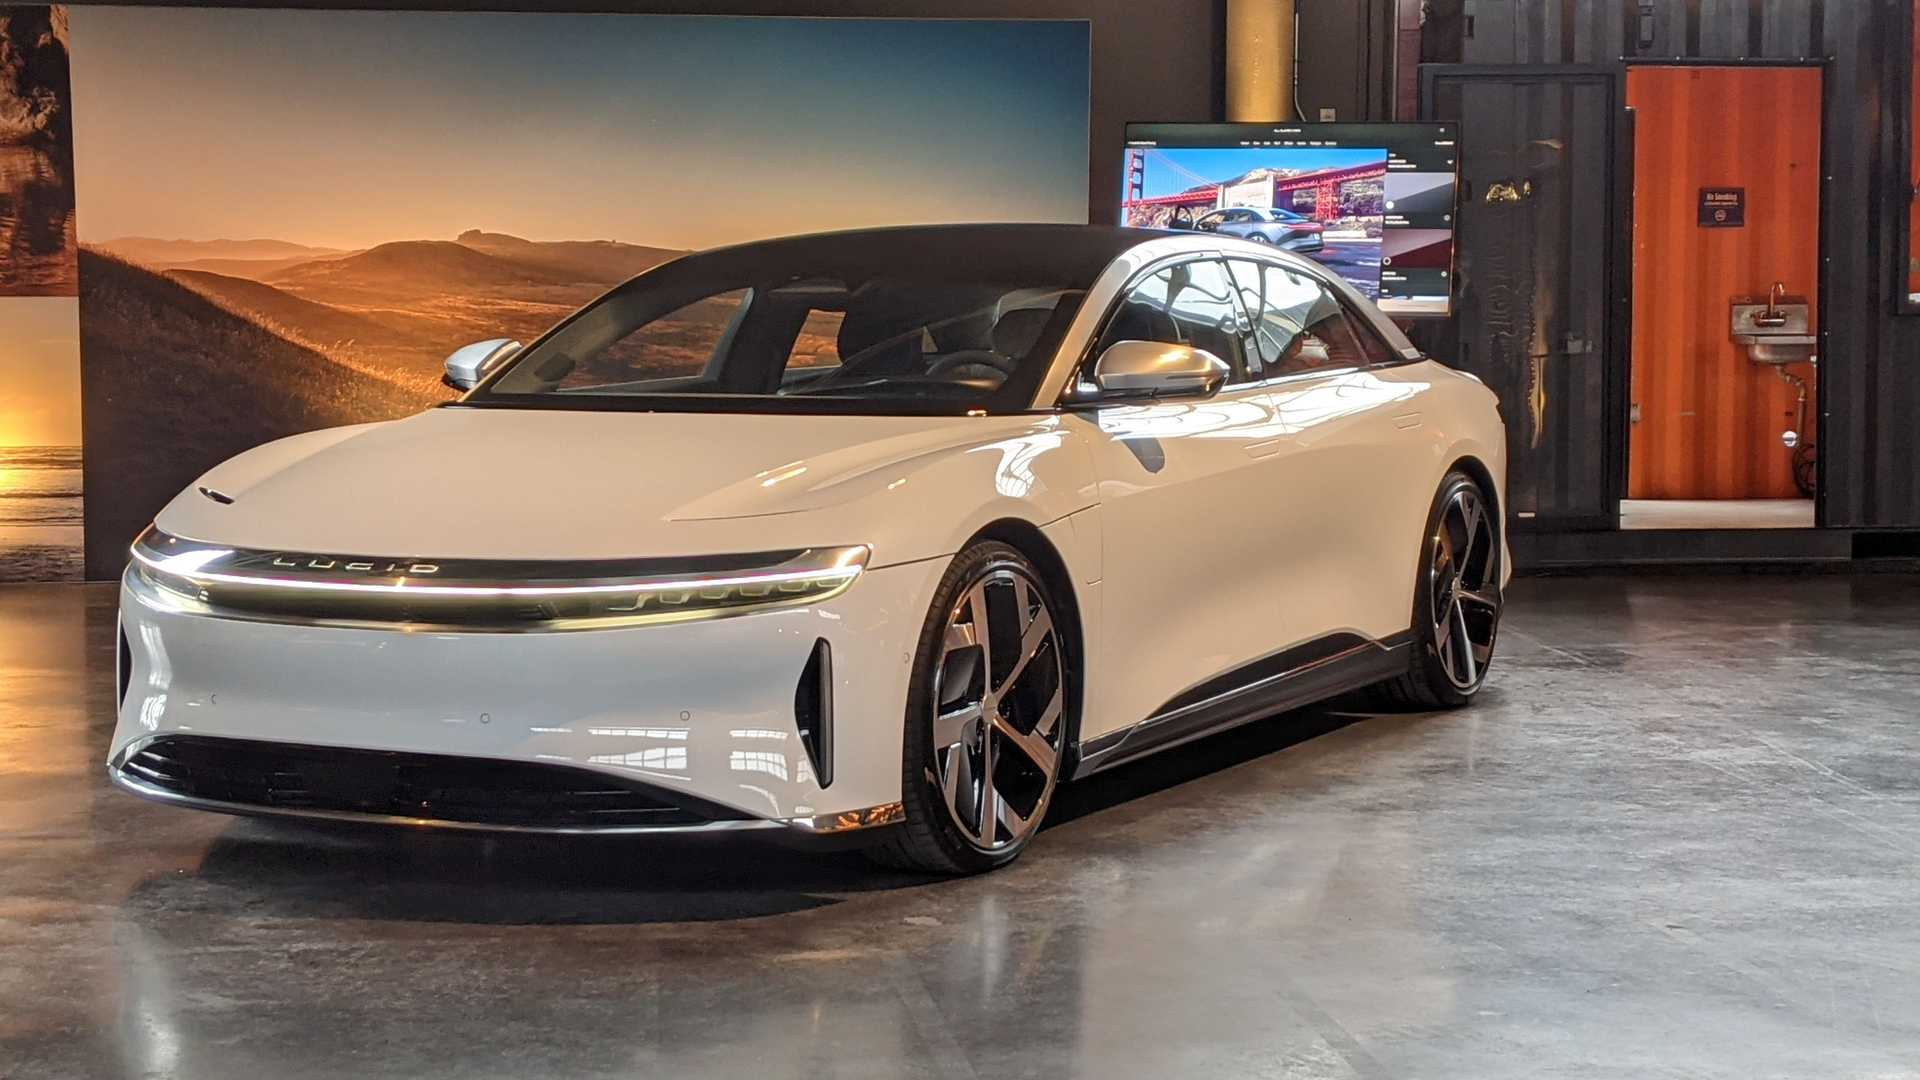 Lucid Motors Reportedly Discussing Going Public Via SPAC